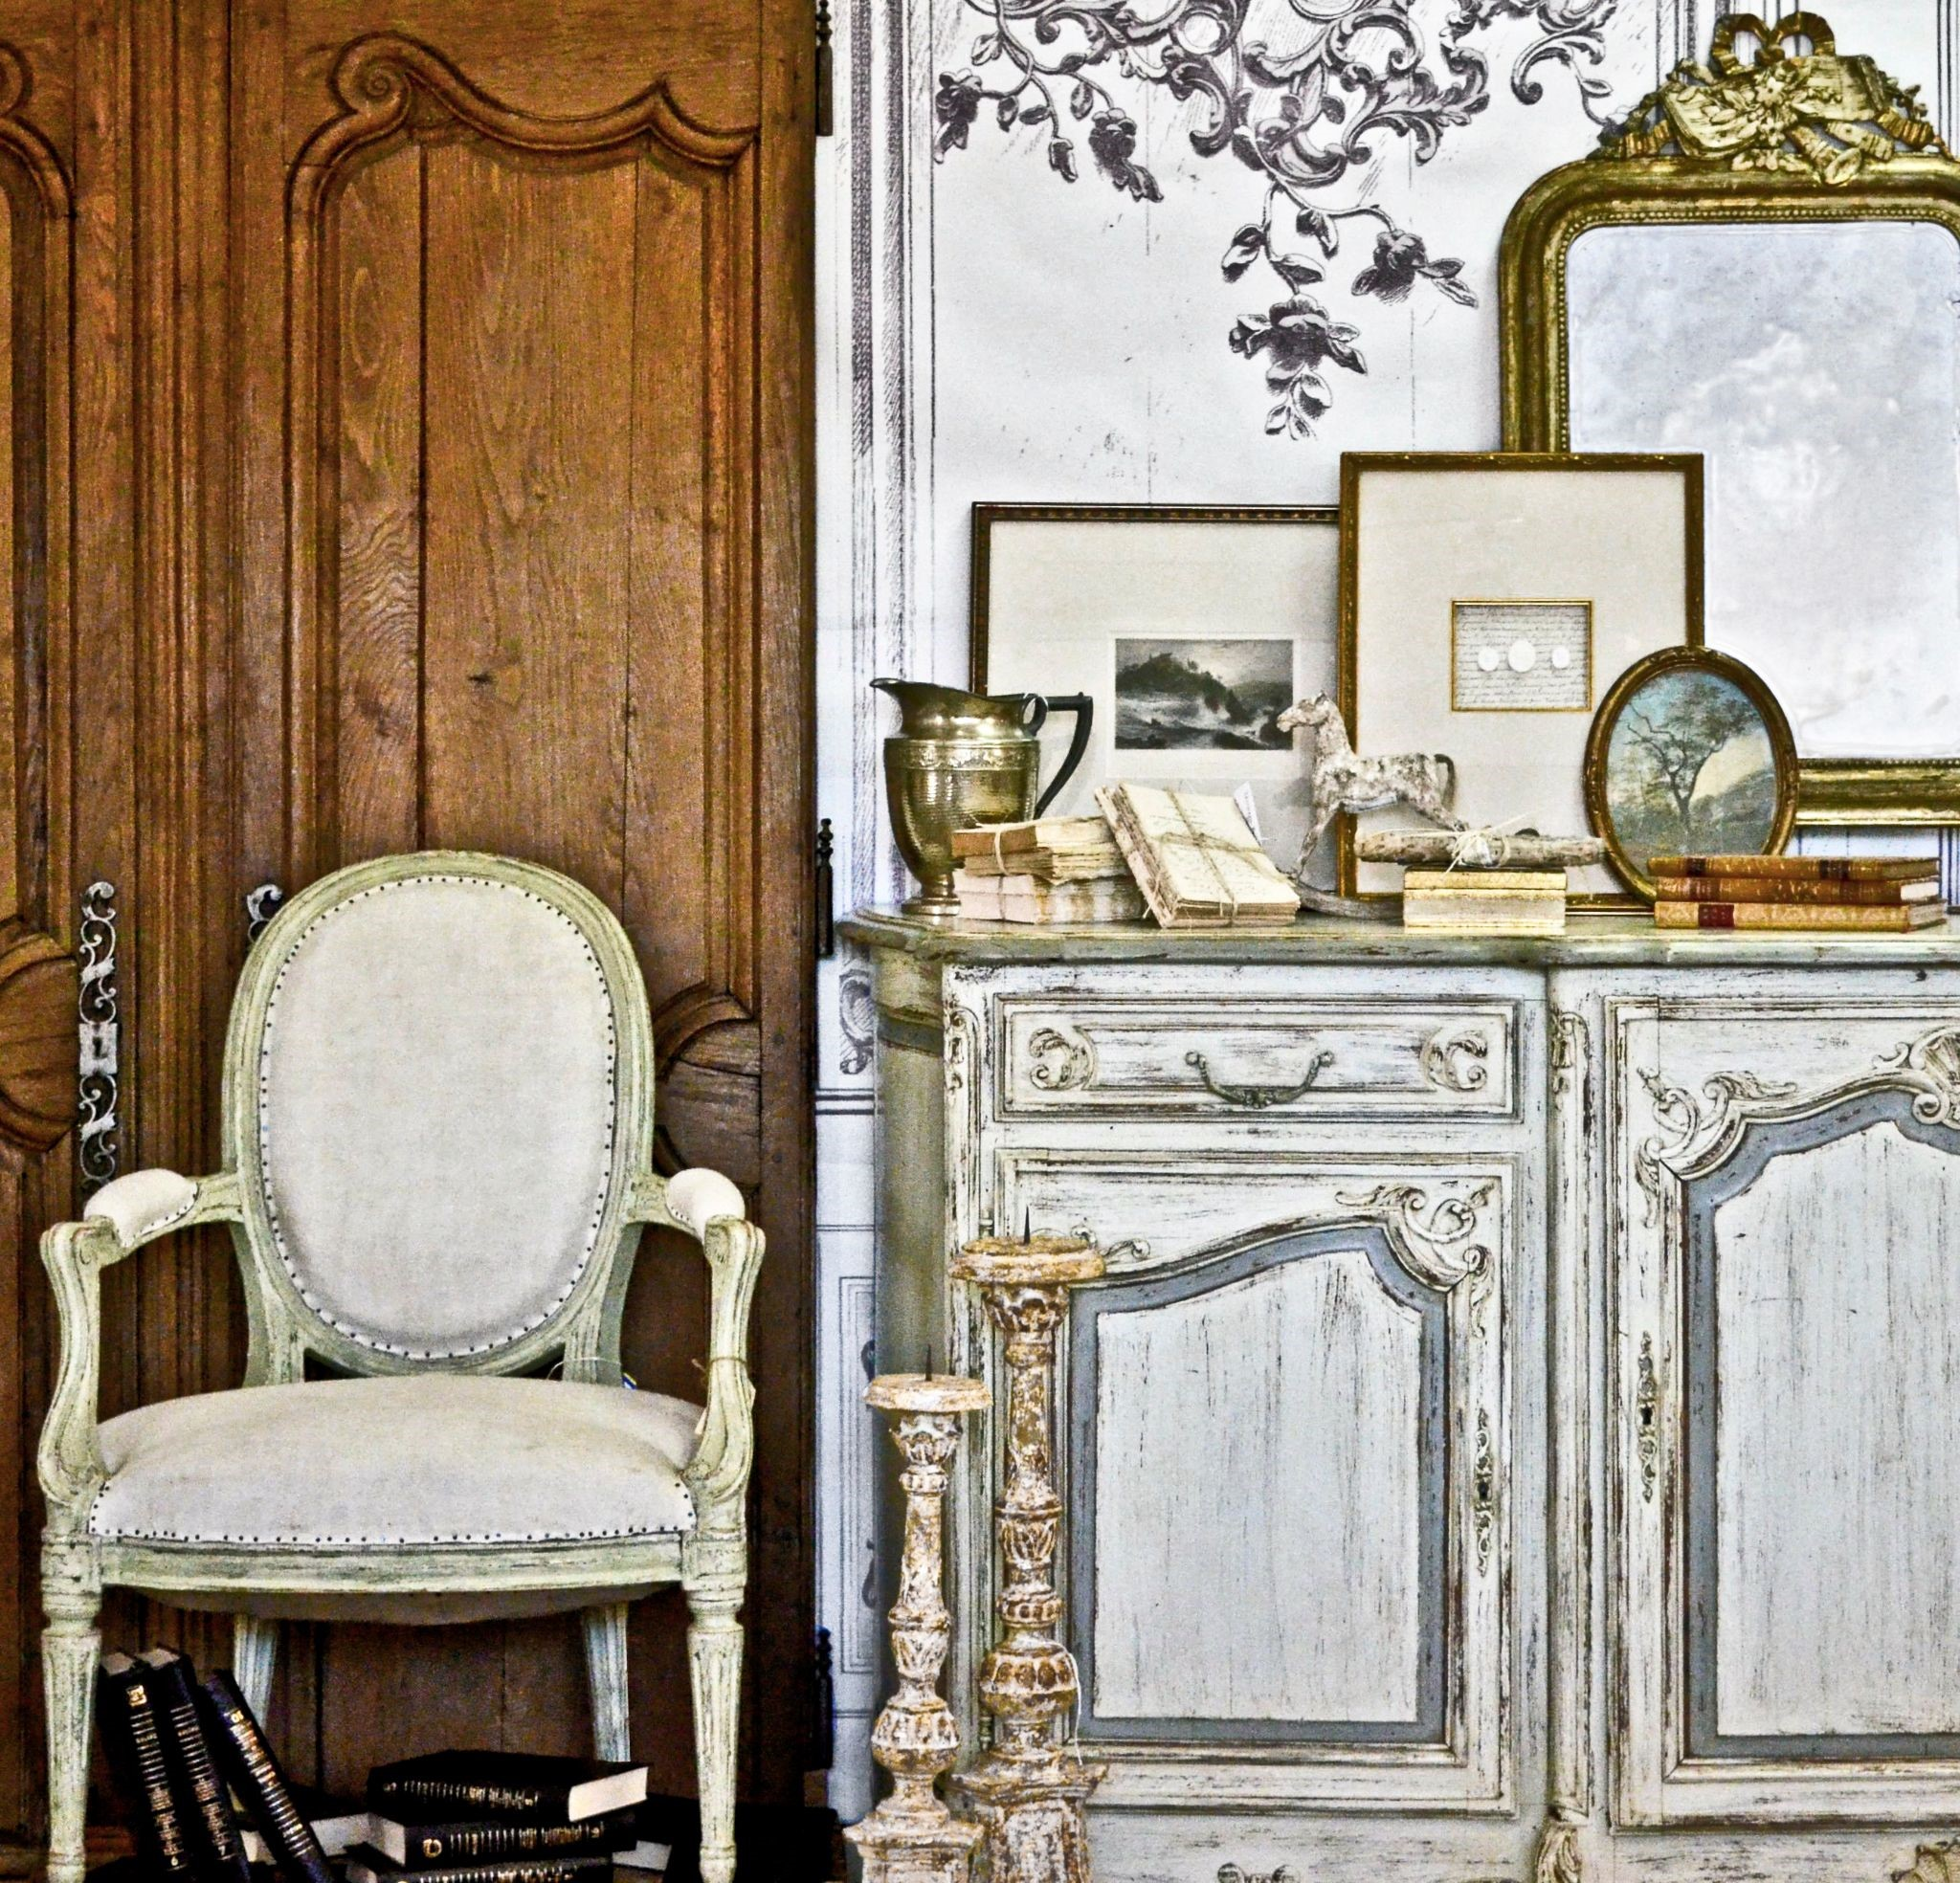 Early Village Antiques, an Antique Store in Houston, showroom display with white-washed French country inspired furniture and farmhouse decor.